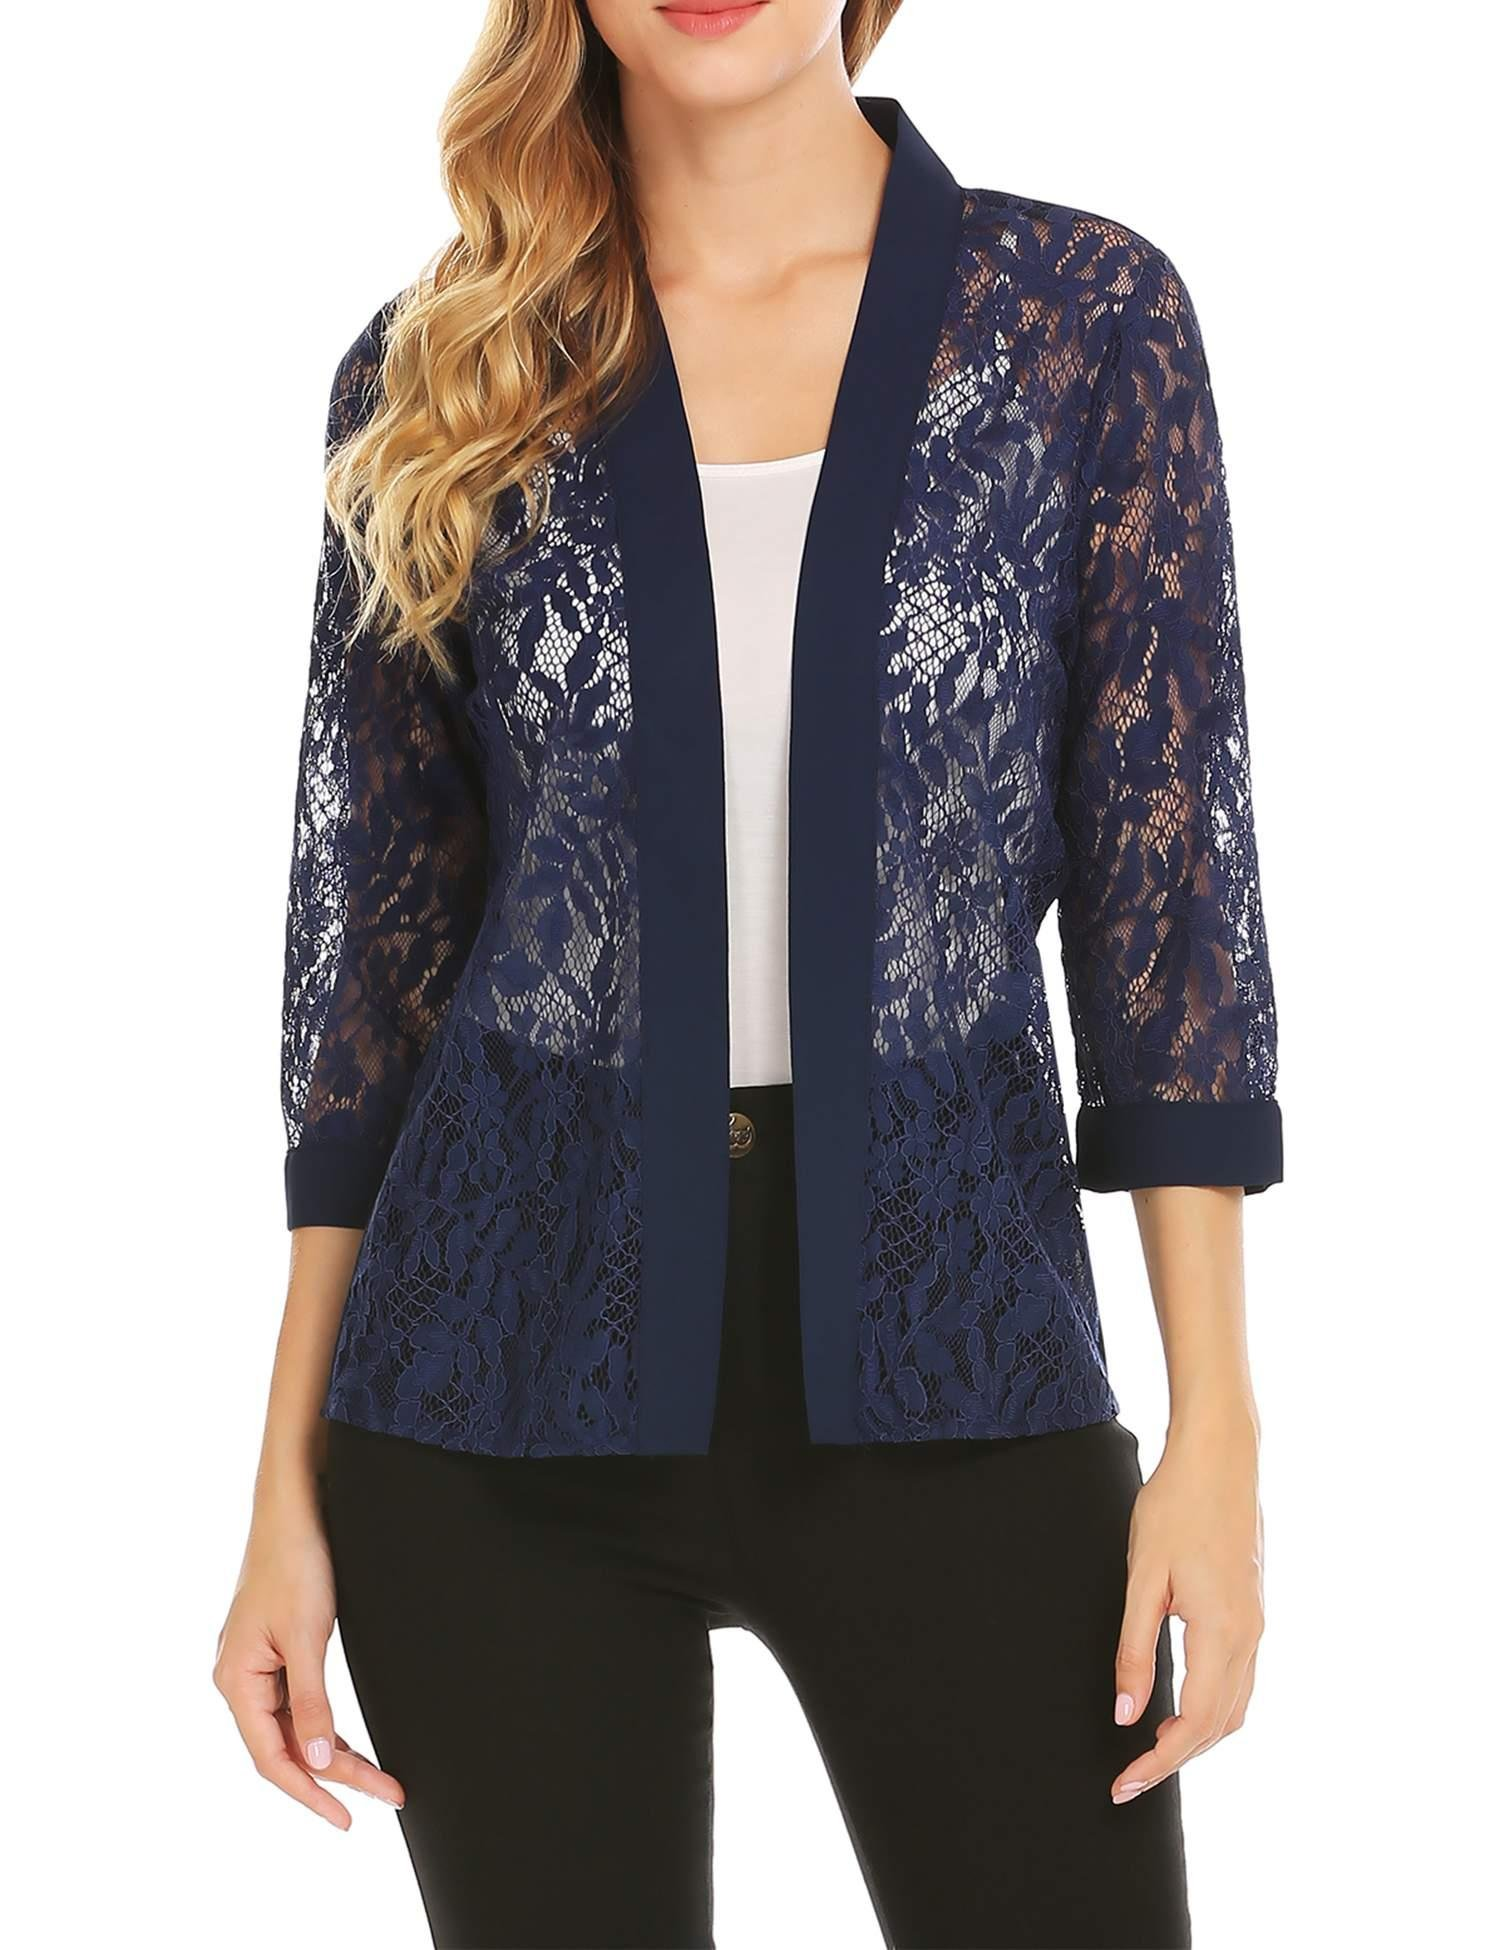 Grabsa Women's Casual 3/4 Sleeve Lace Open Front Cardigan